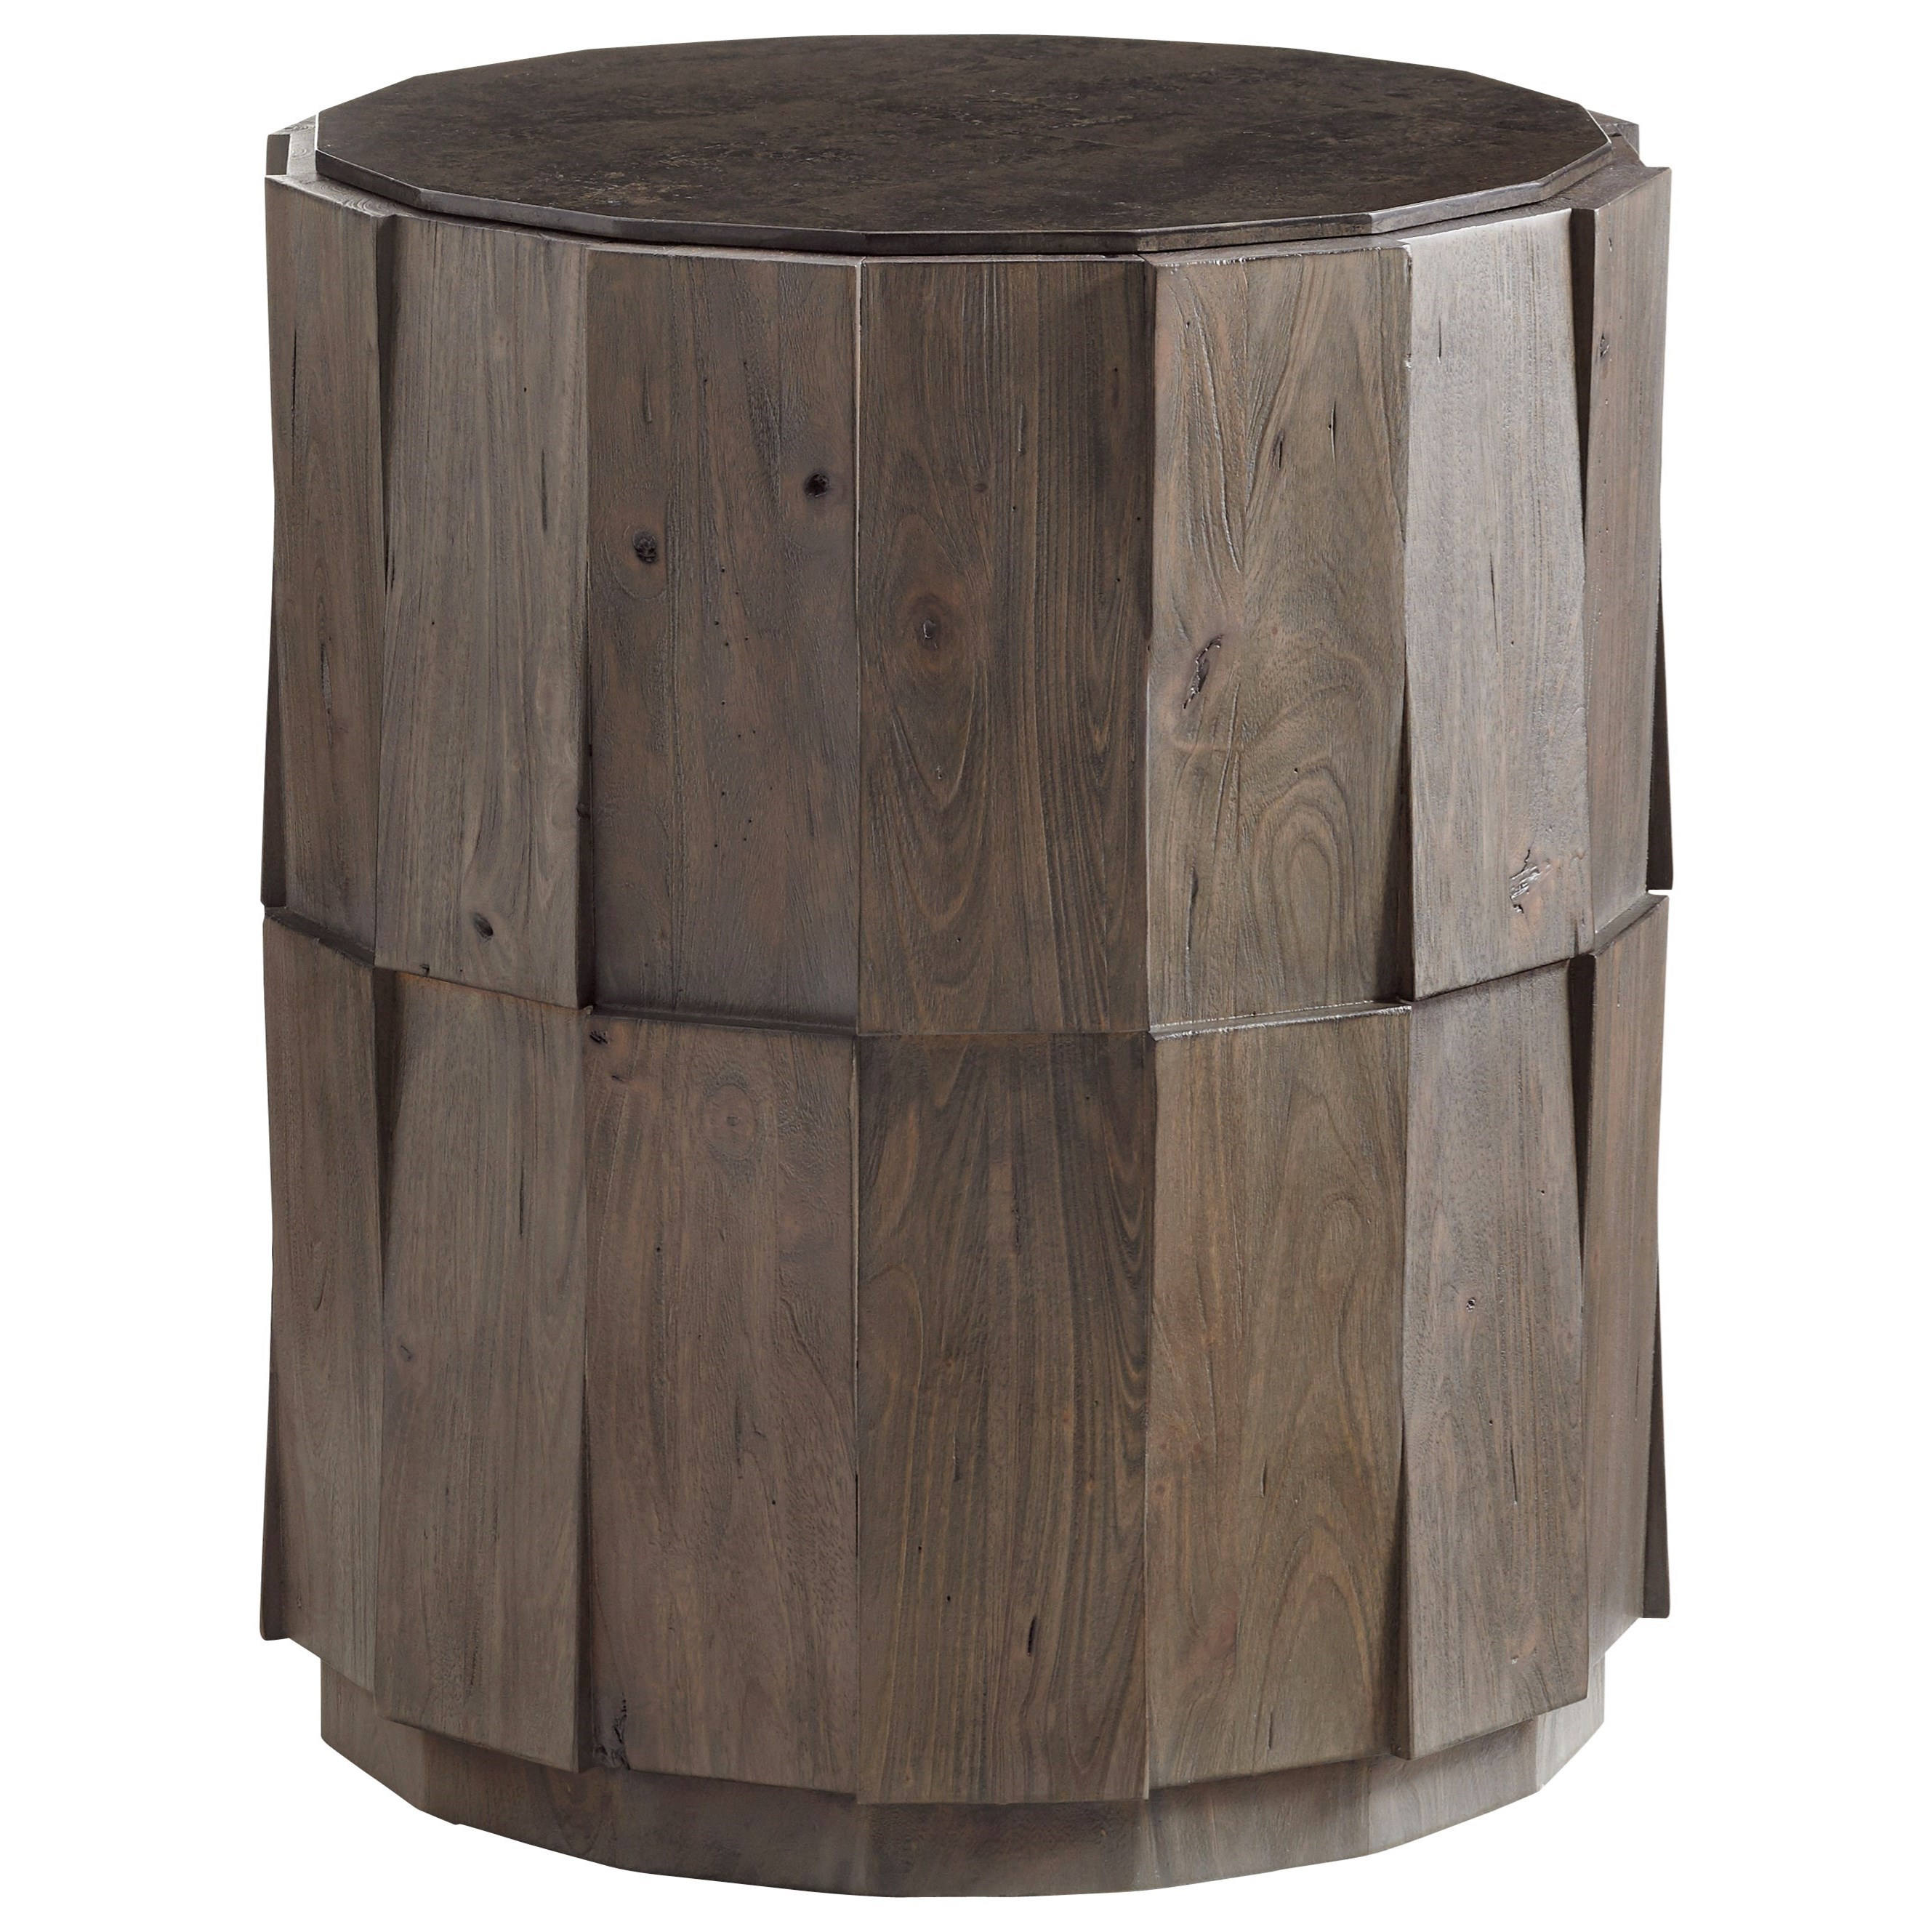 Cypress Point Everett Round Travertine End Table by Tommy Bahama Home at Stuckey Furniture